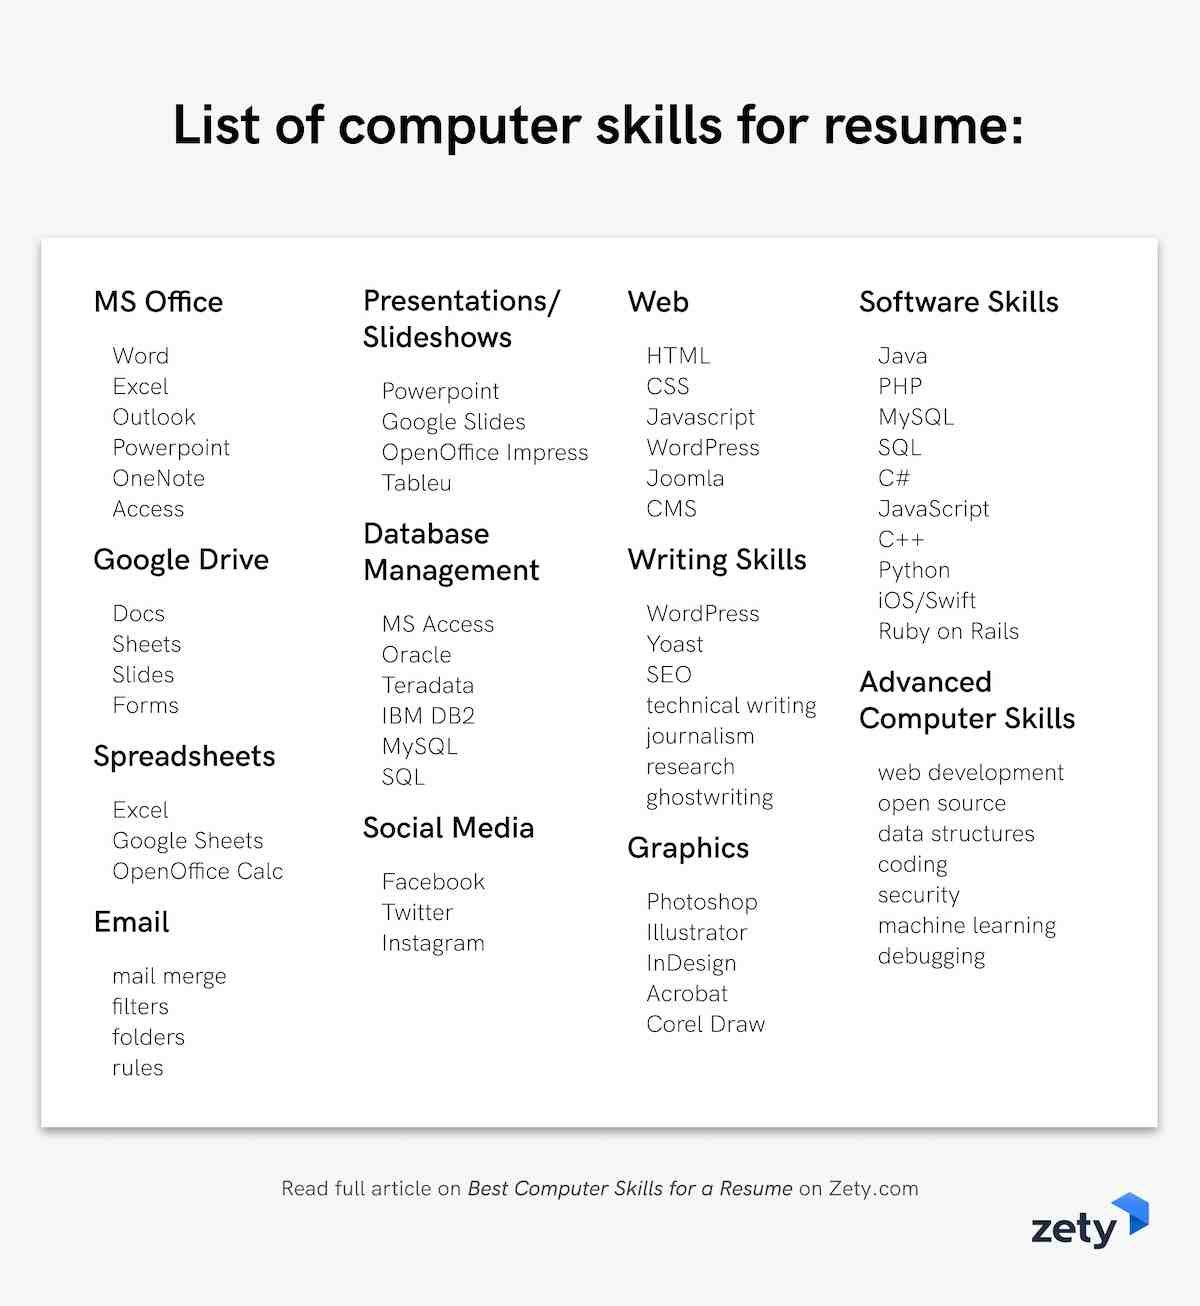 List of Computer Skills for Resume